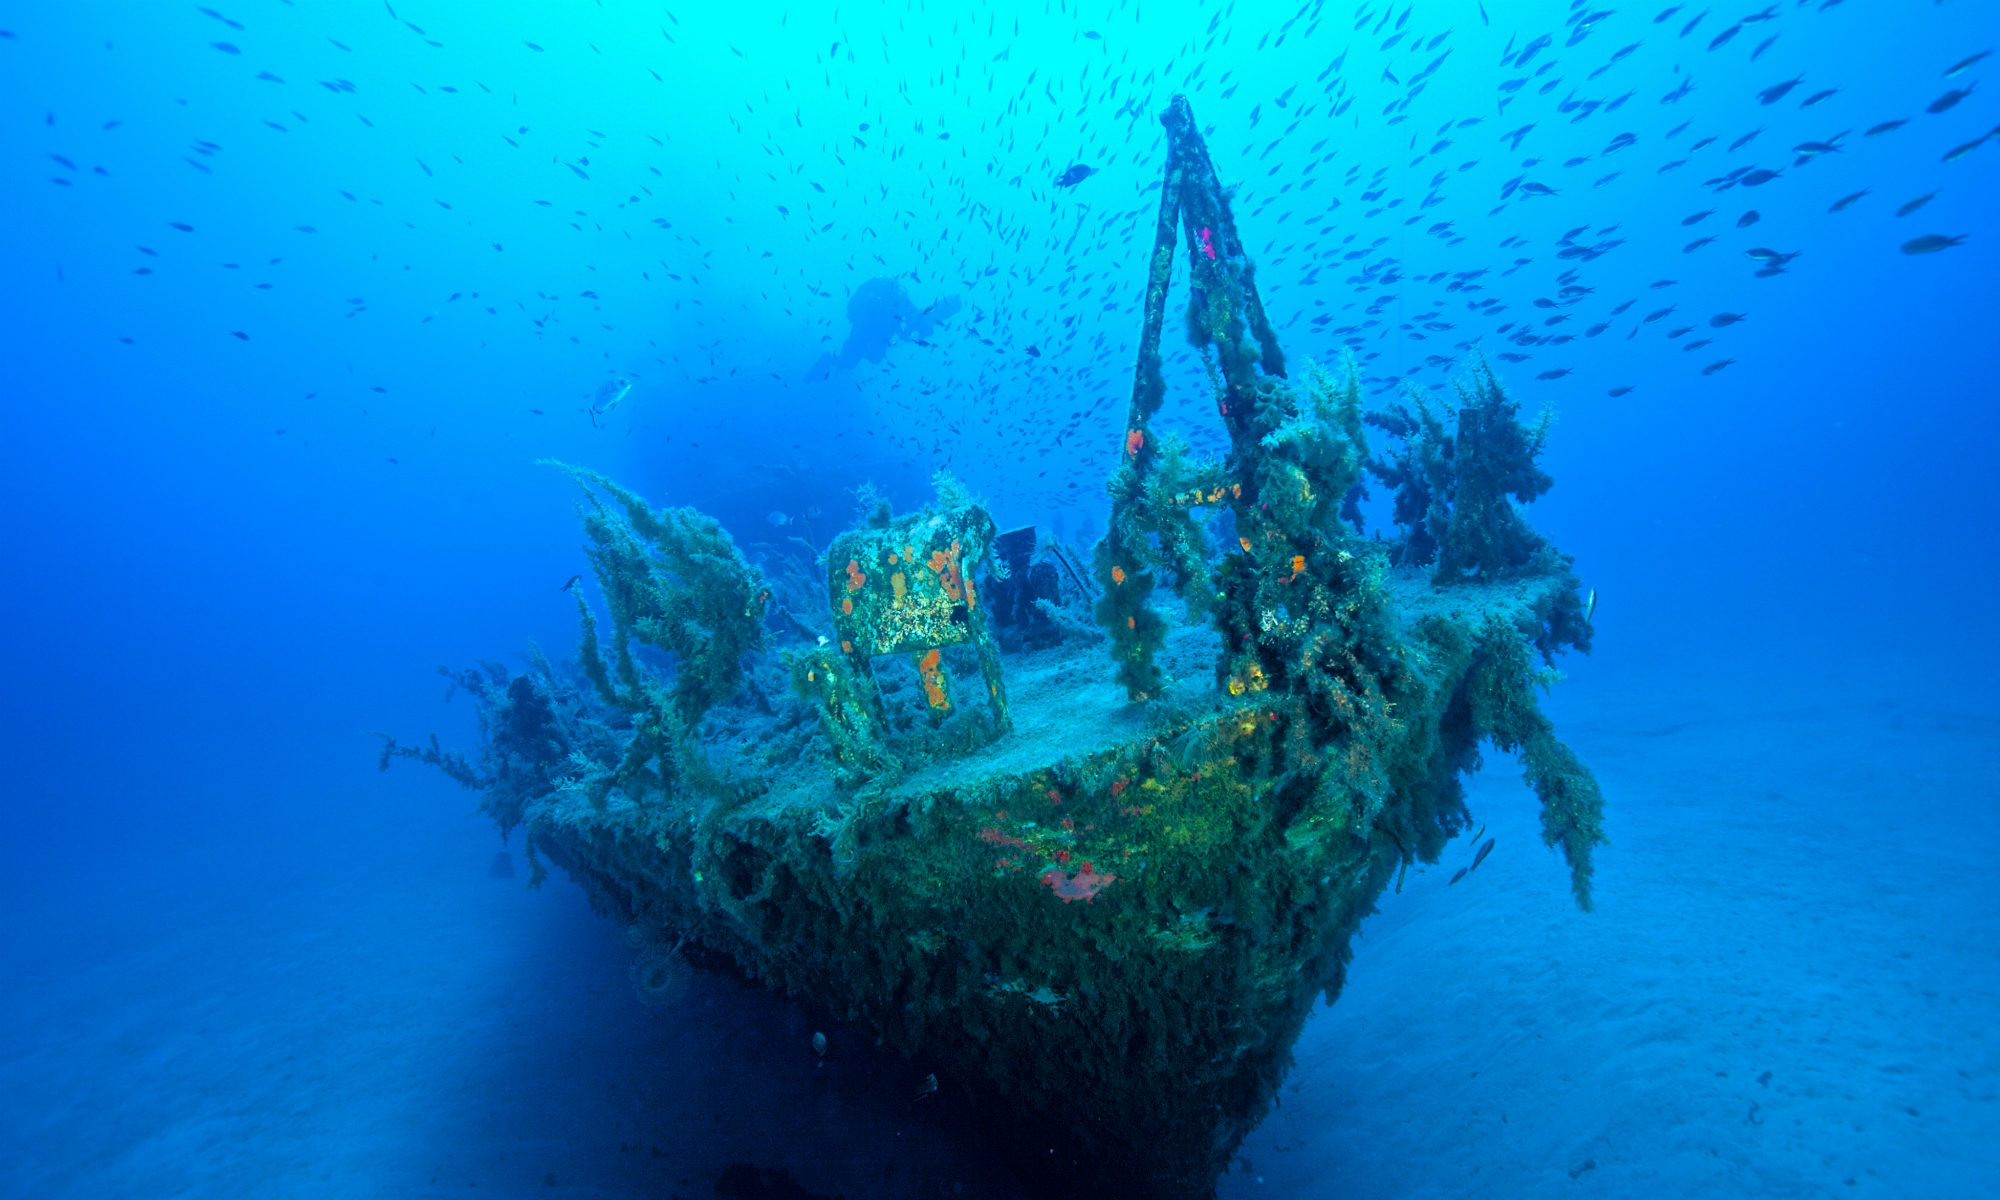 One of Malta's many sunken shipwrecks is visible on the seabed.